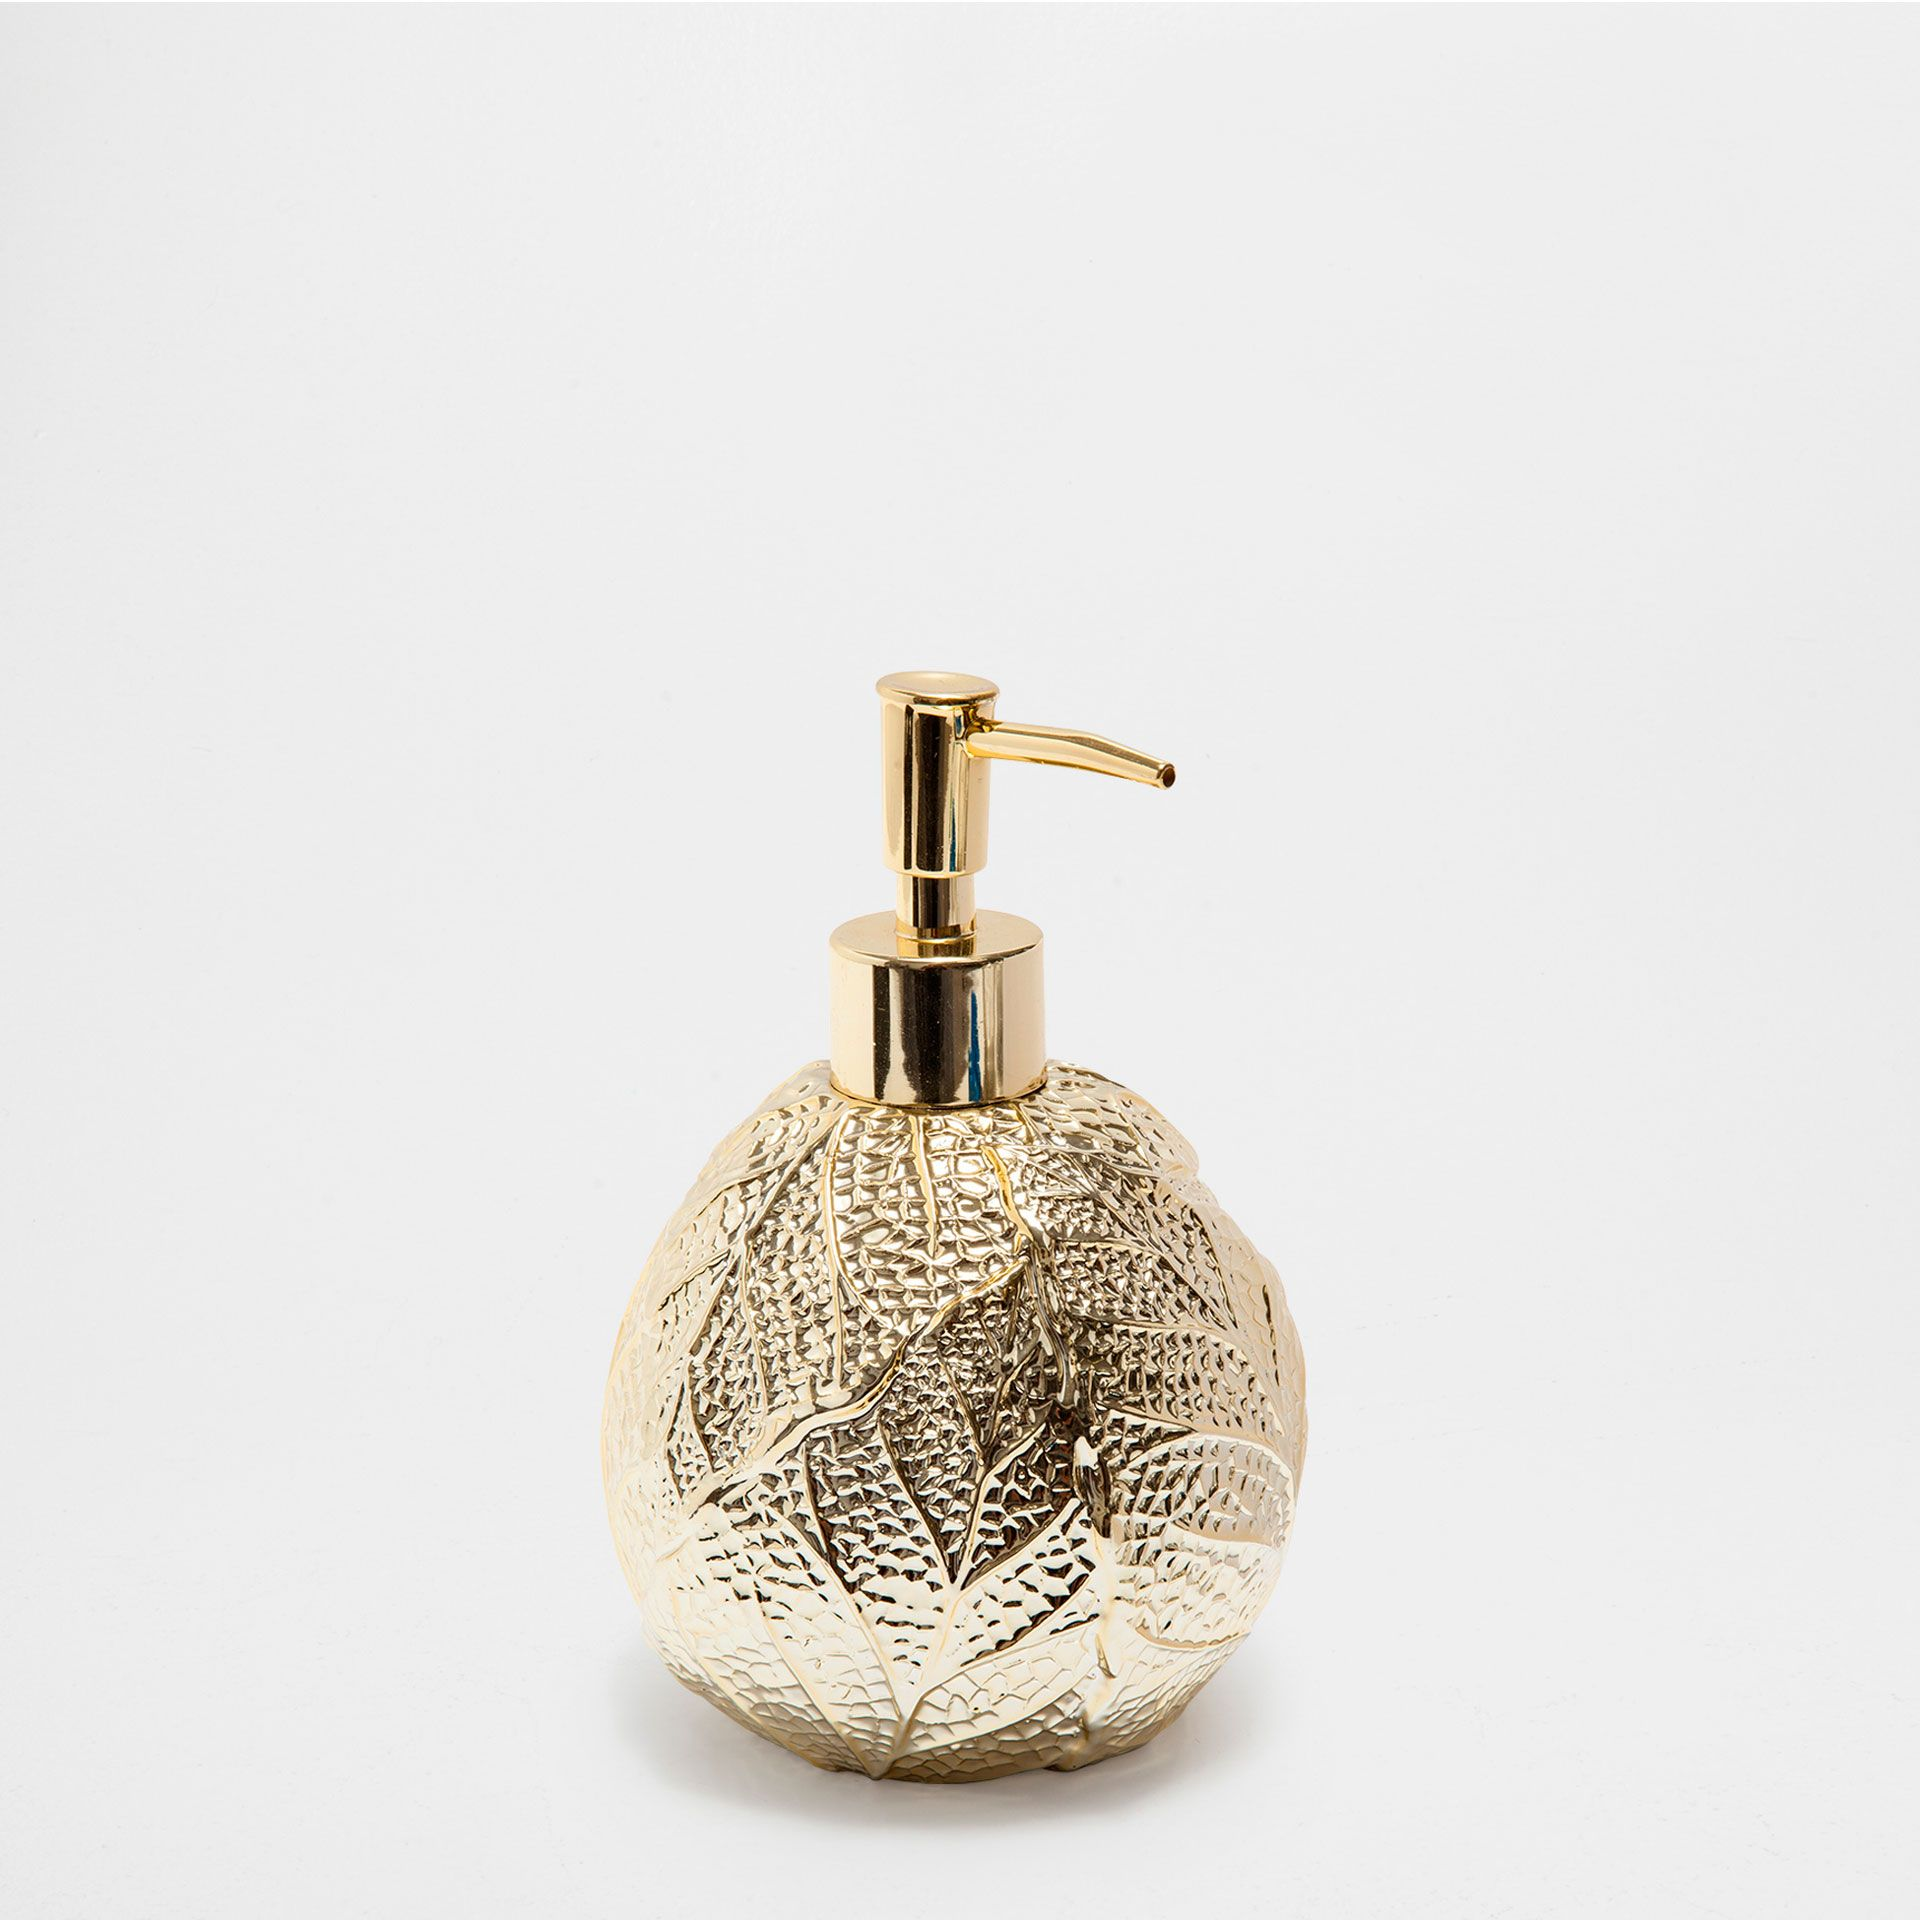 Gold Bathroom Accessories Uk golden leaves dispenser | golden leaves, bath accessories and bath